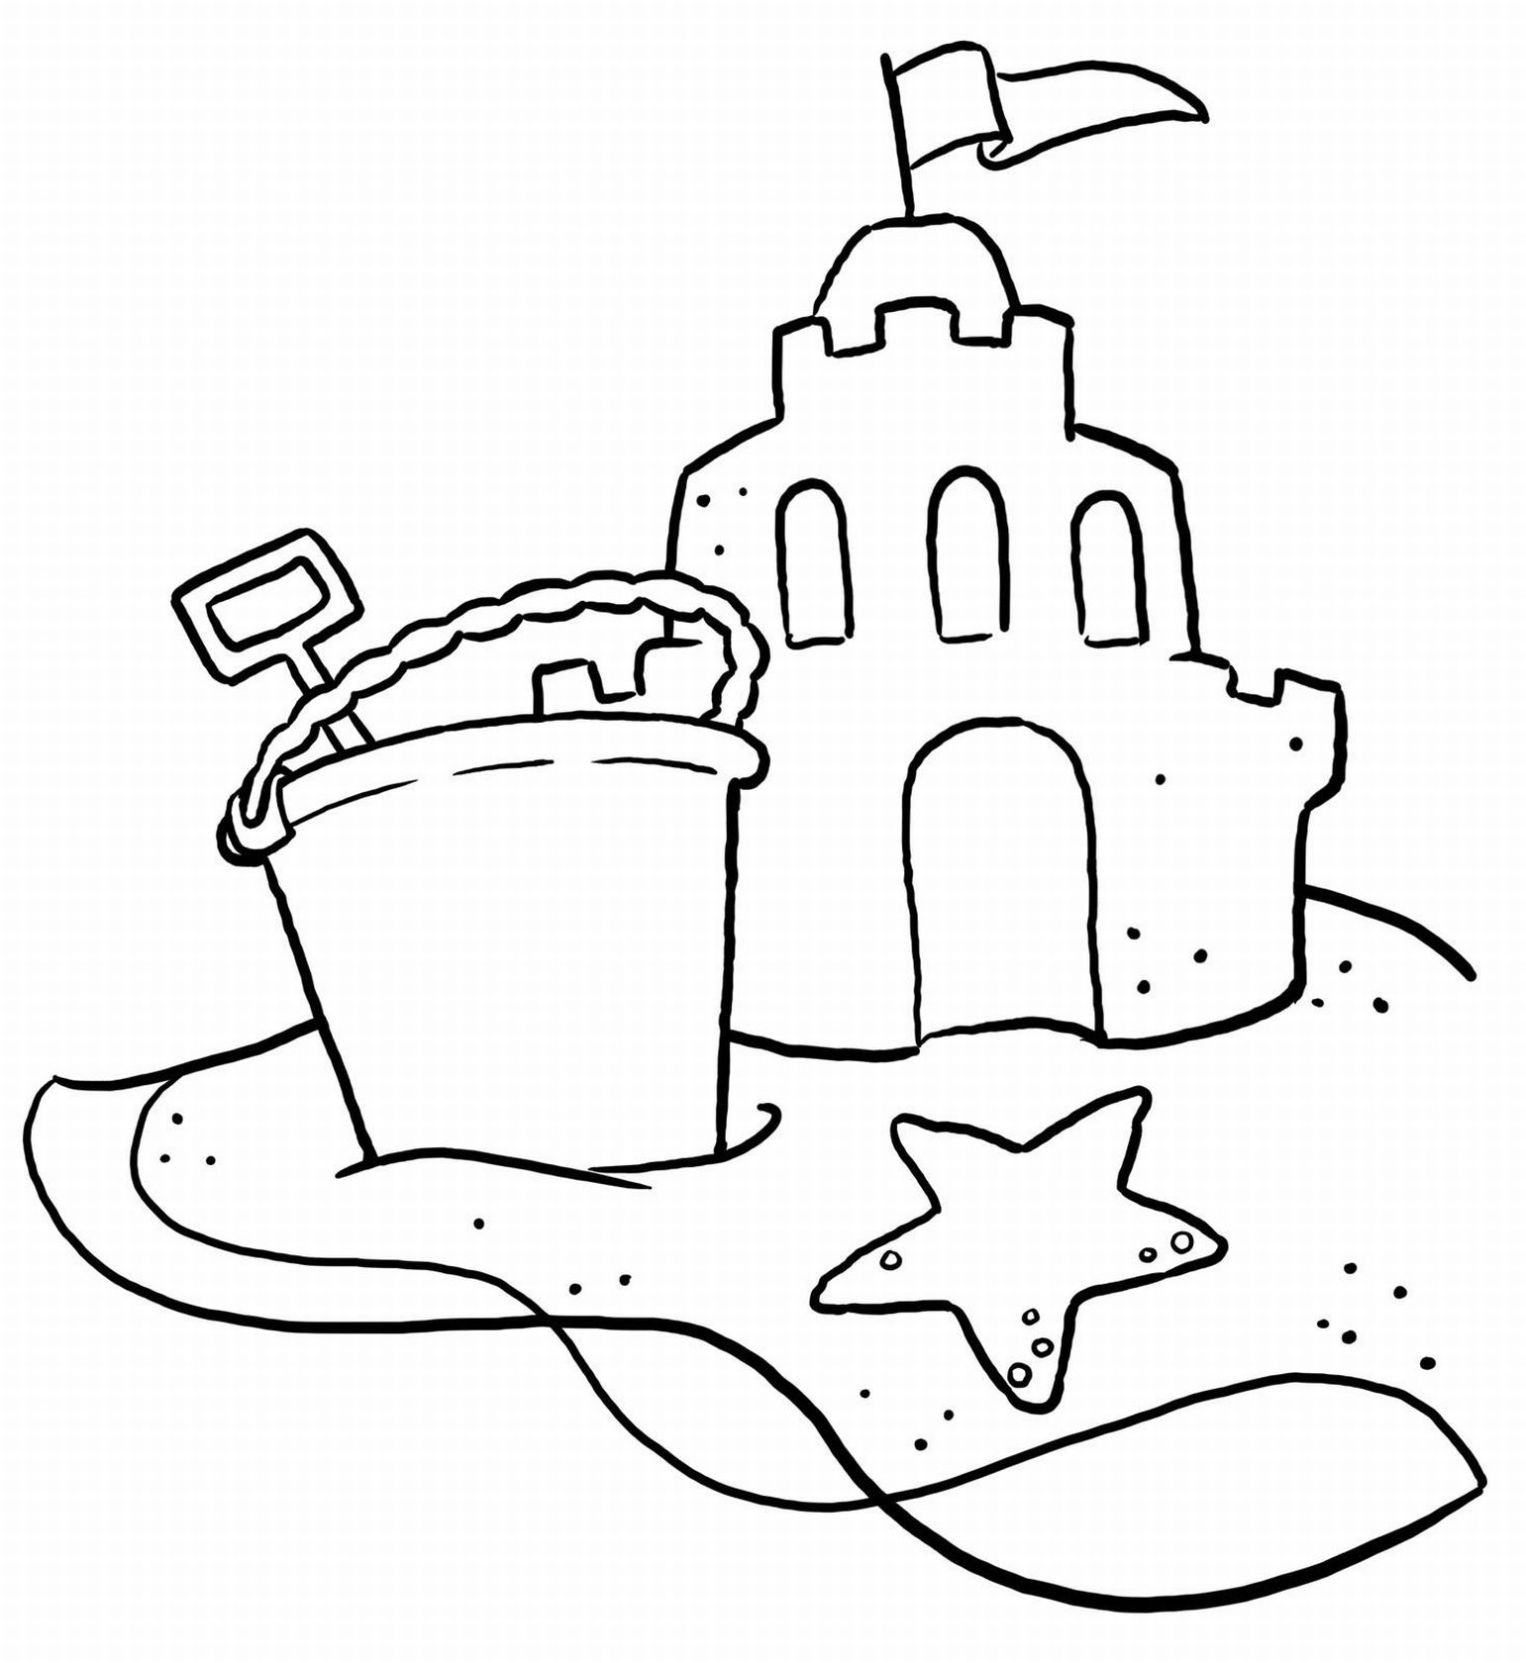 Cute Disney Coloring Pages also Hogwarts Crest 285130335 likewise Walt Disney Coloring Pages Flounder Sebastian Princess Ariel Photo likewise 35c Ballerina Coloring Pages likewise Coloring Pages 6670. on castle coloring pages for adults